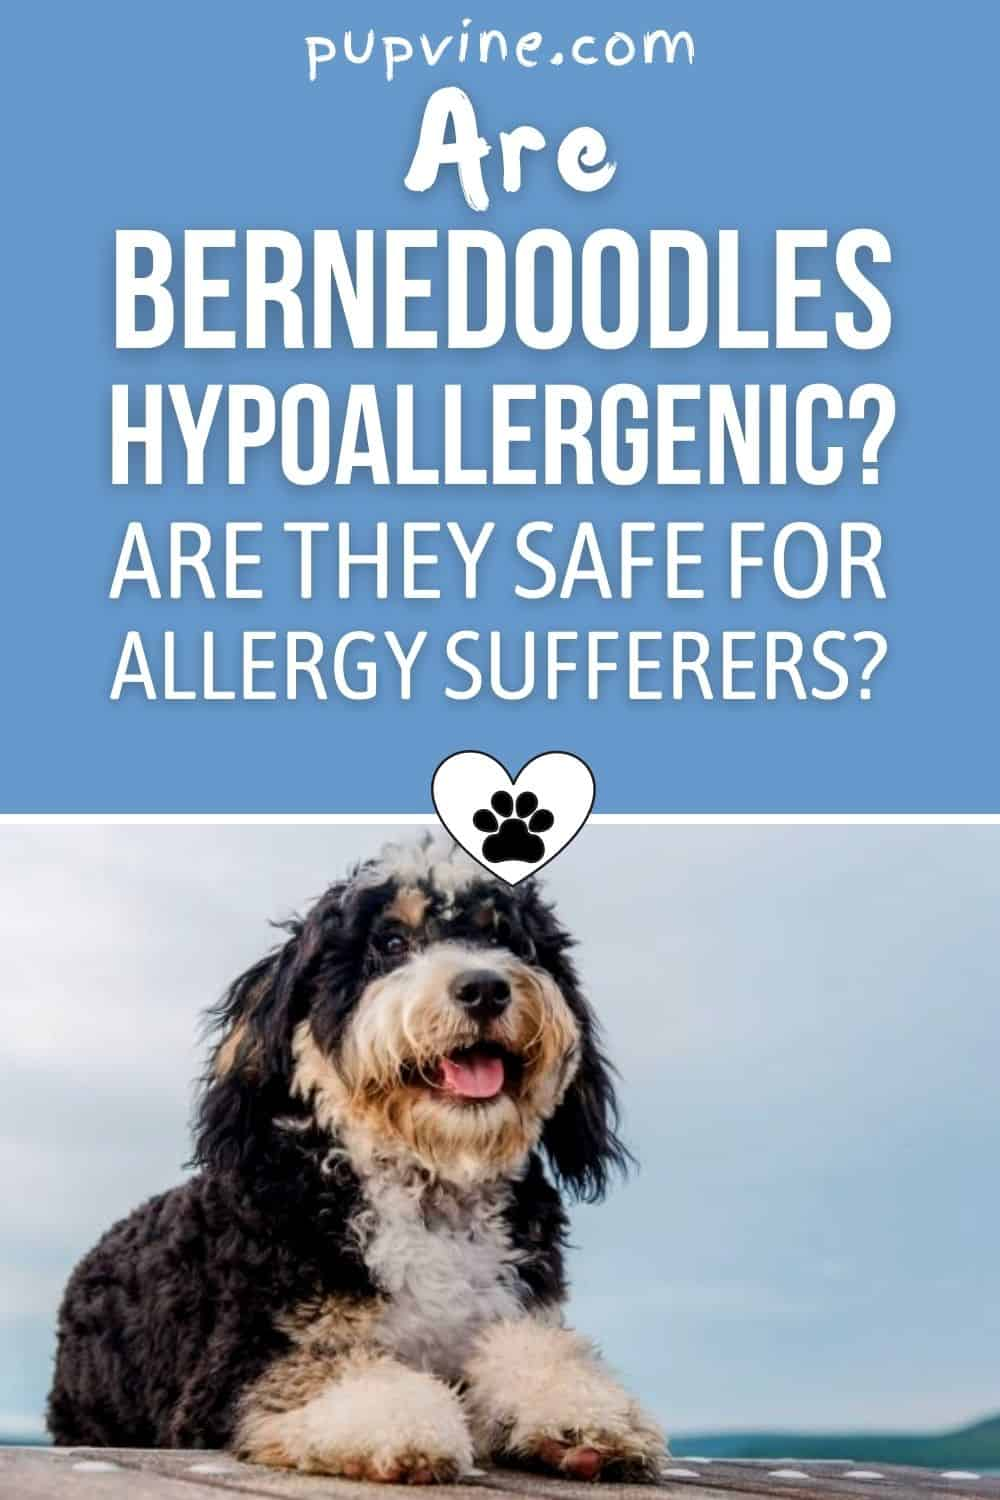 Are Bernedoodles Hypoallergenic? Are They Safe For Allergy Sufferers?